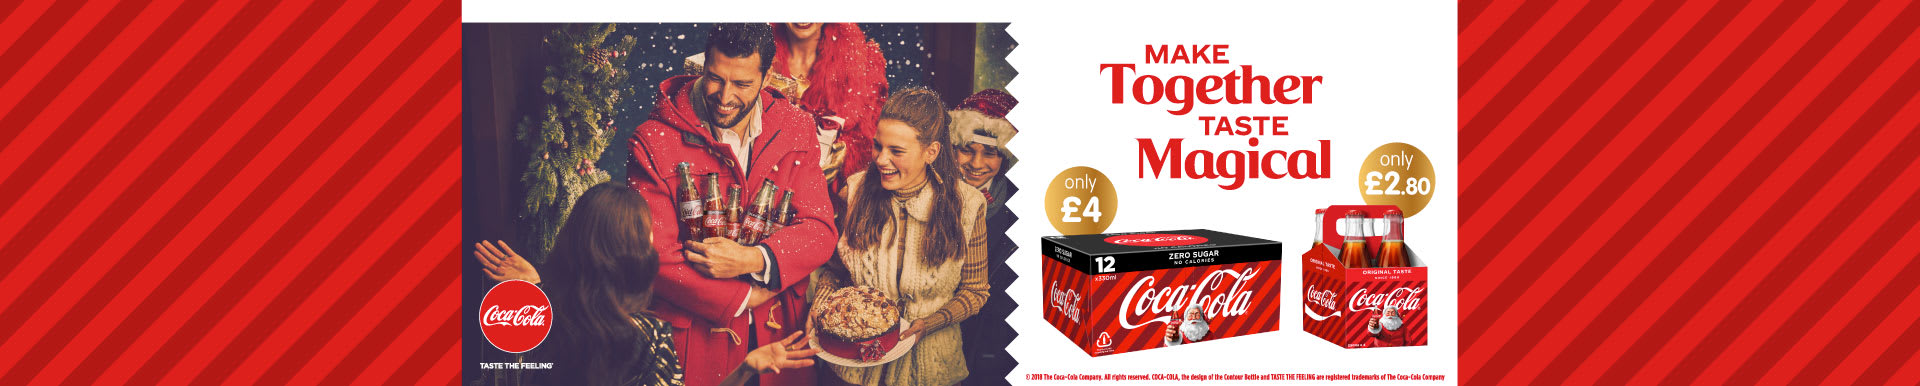 Save on Coca Cola this Christmas at B&M.